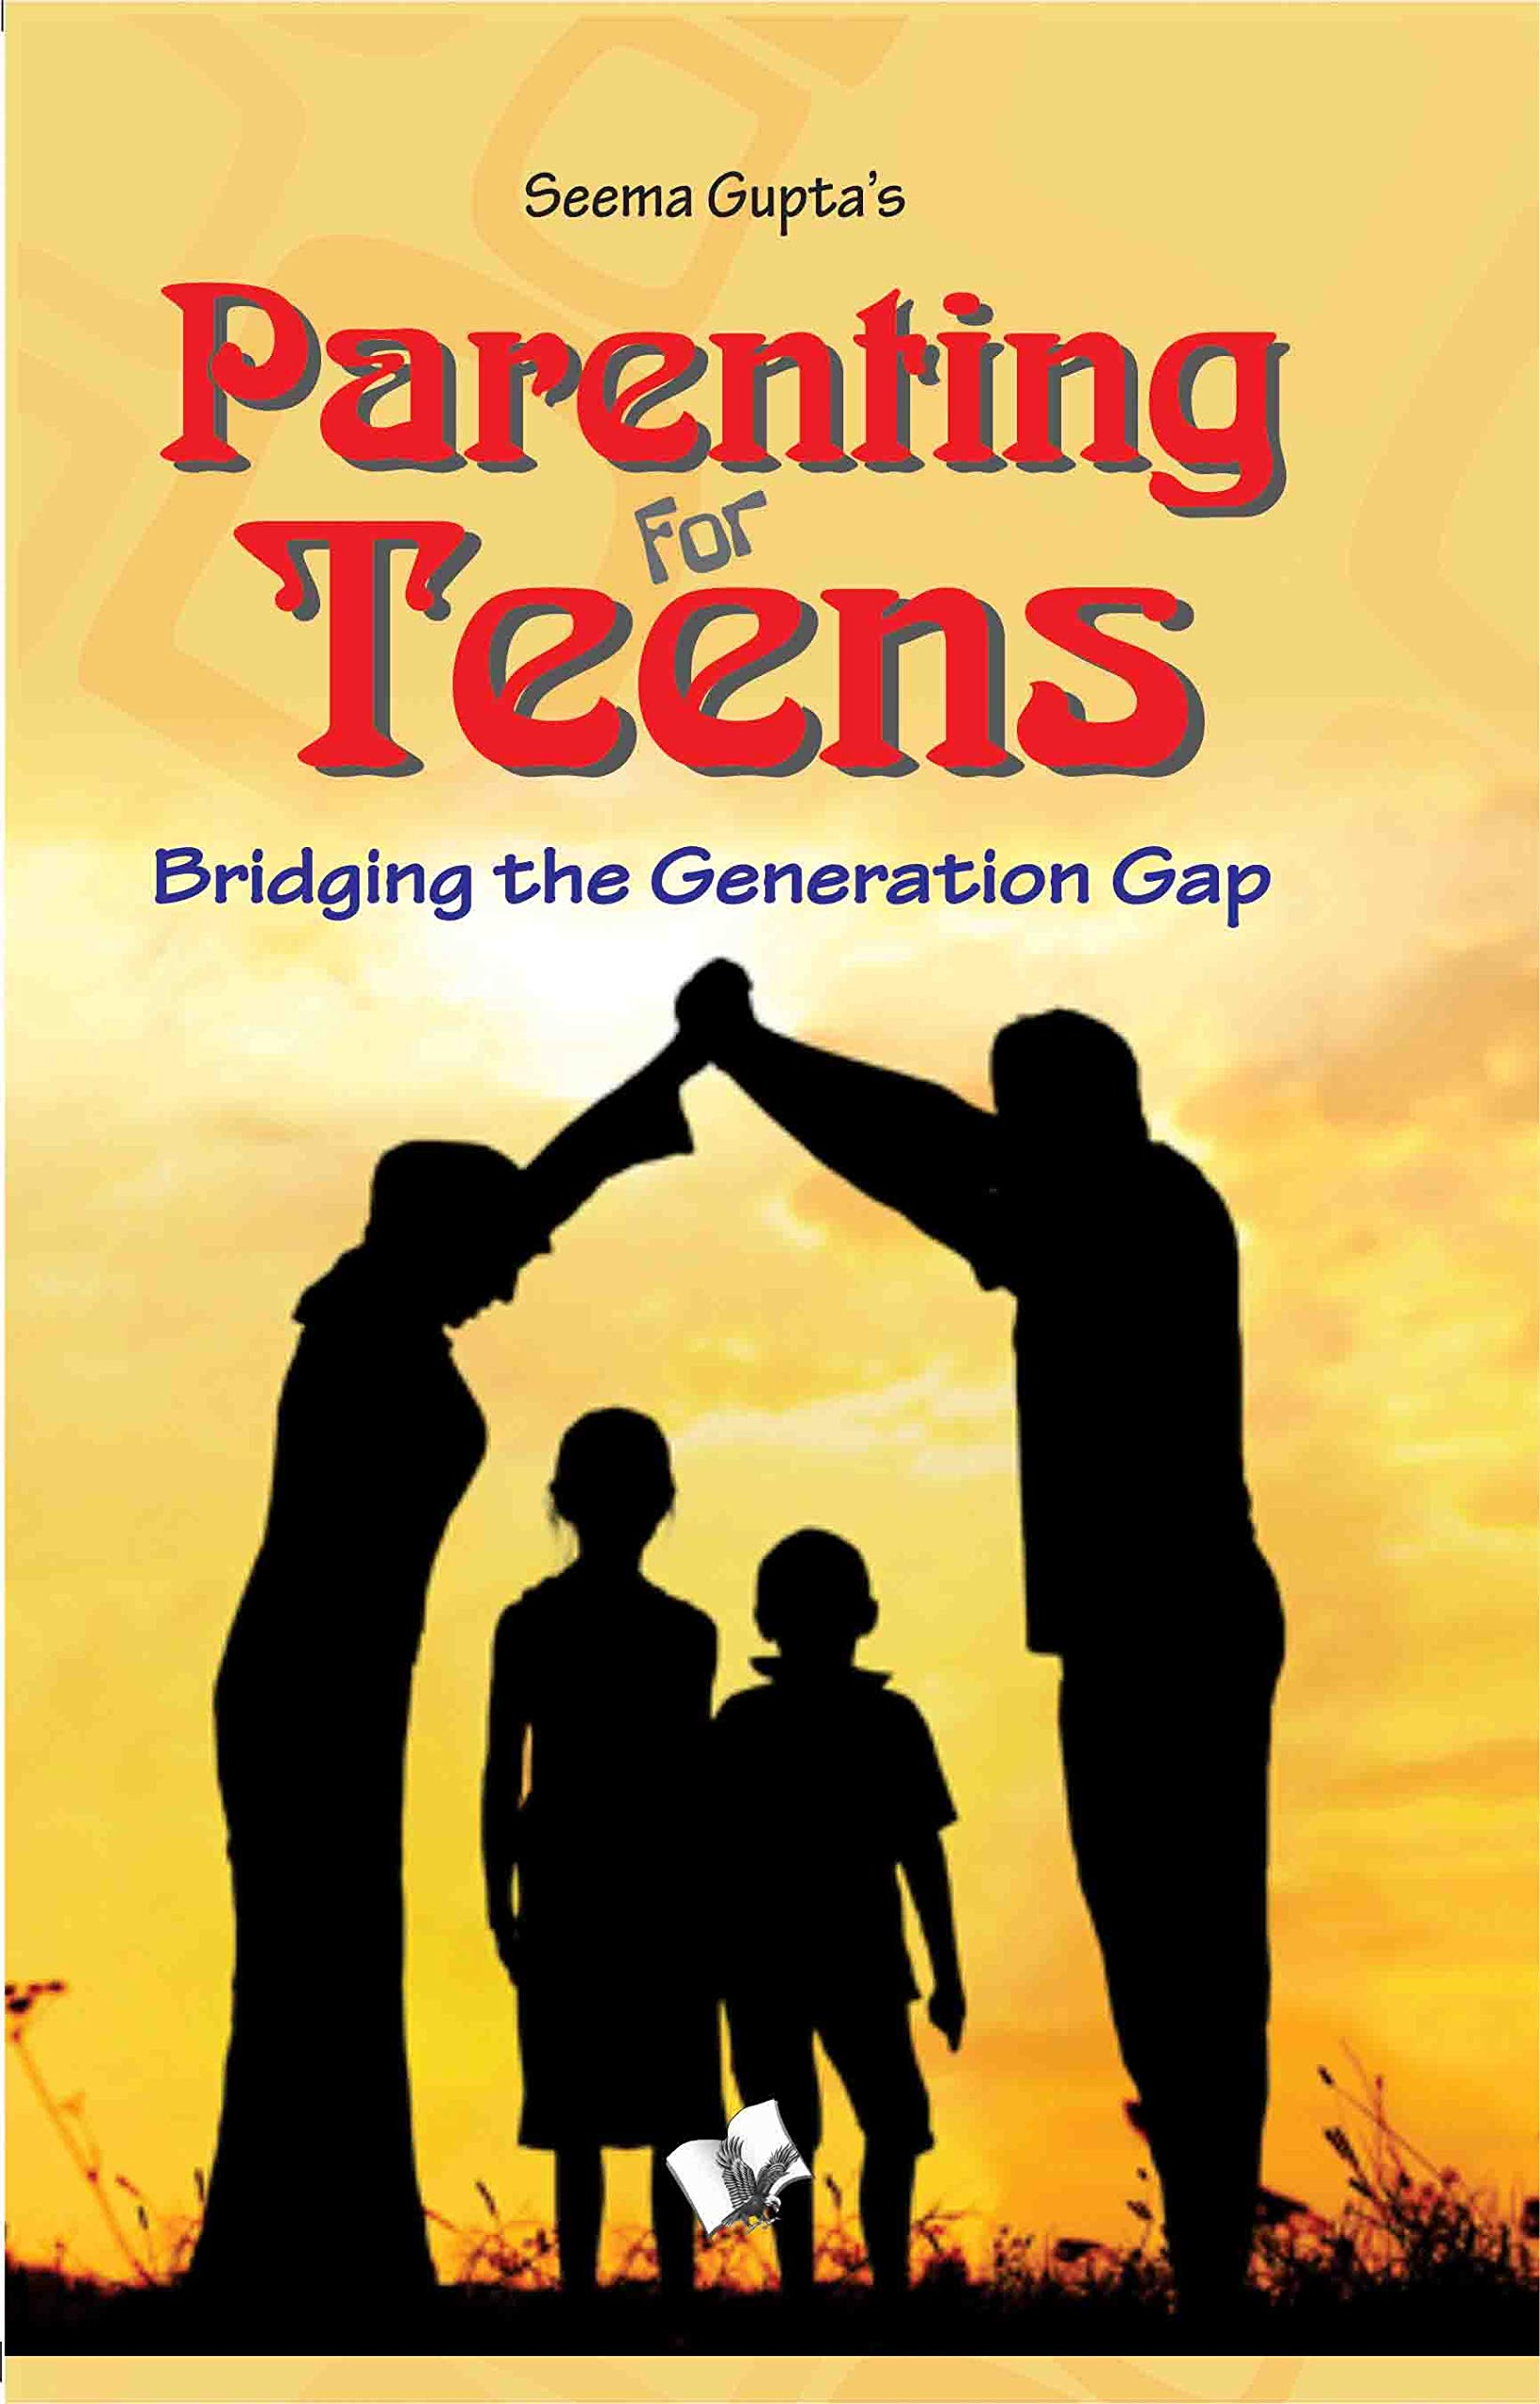 PARENTING FOR TEENS: BRIDGING THE GAP IN THINKING BETWEEN TWO GENERATIONS